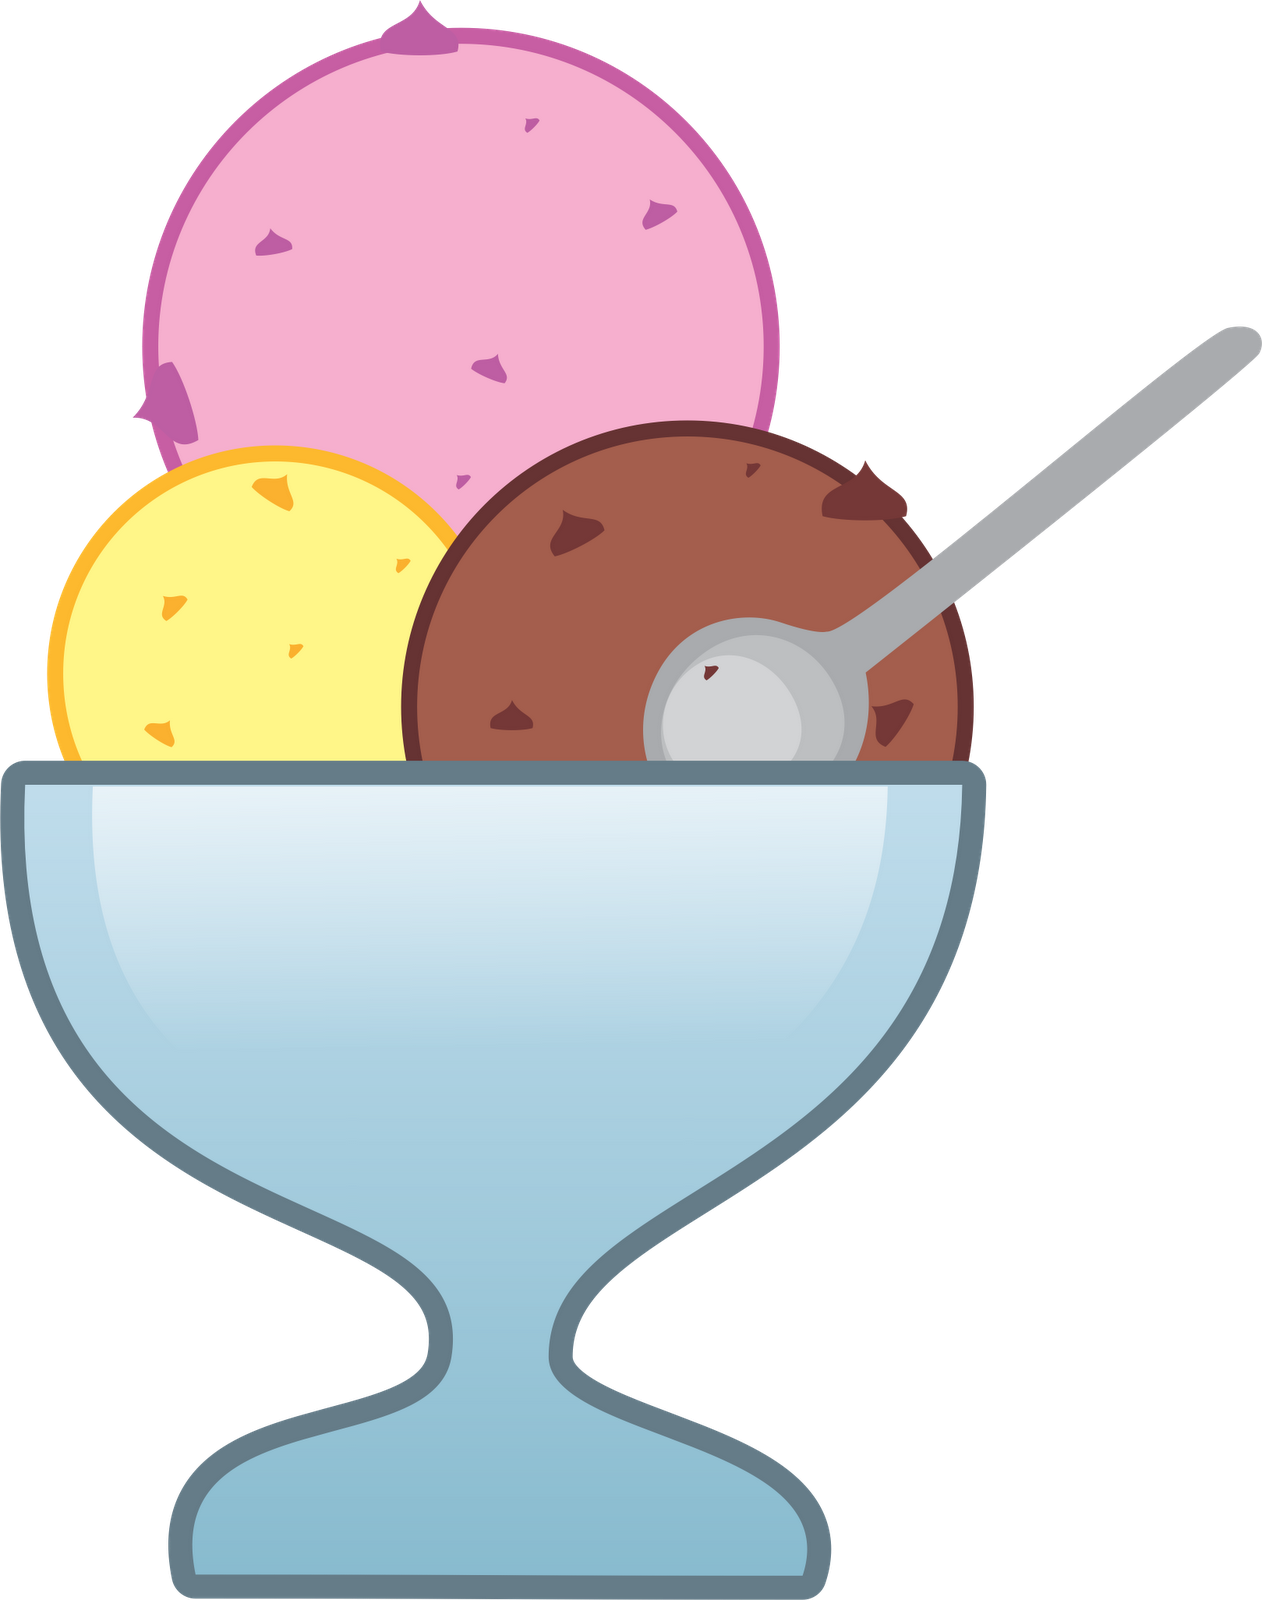 icecream clipart bowl